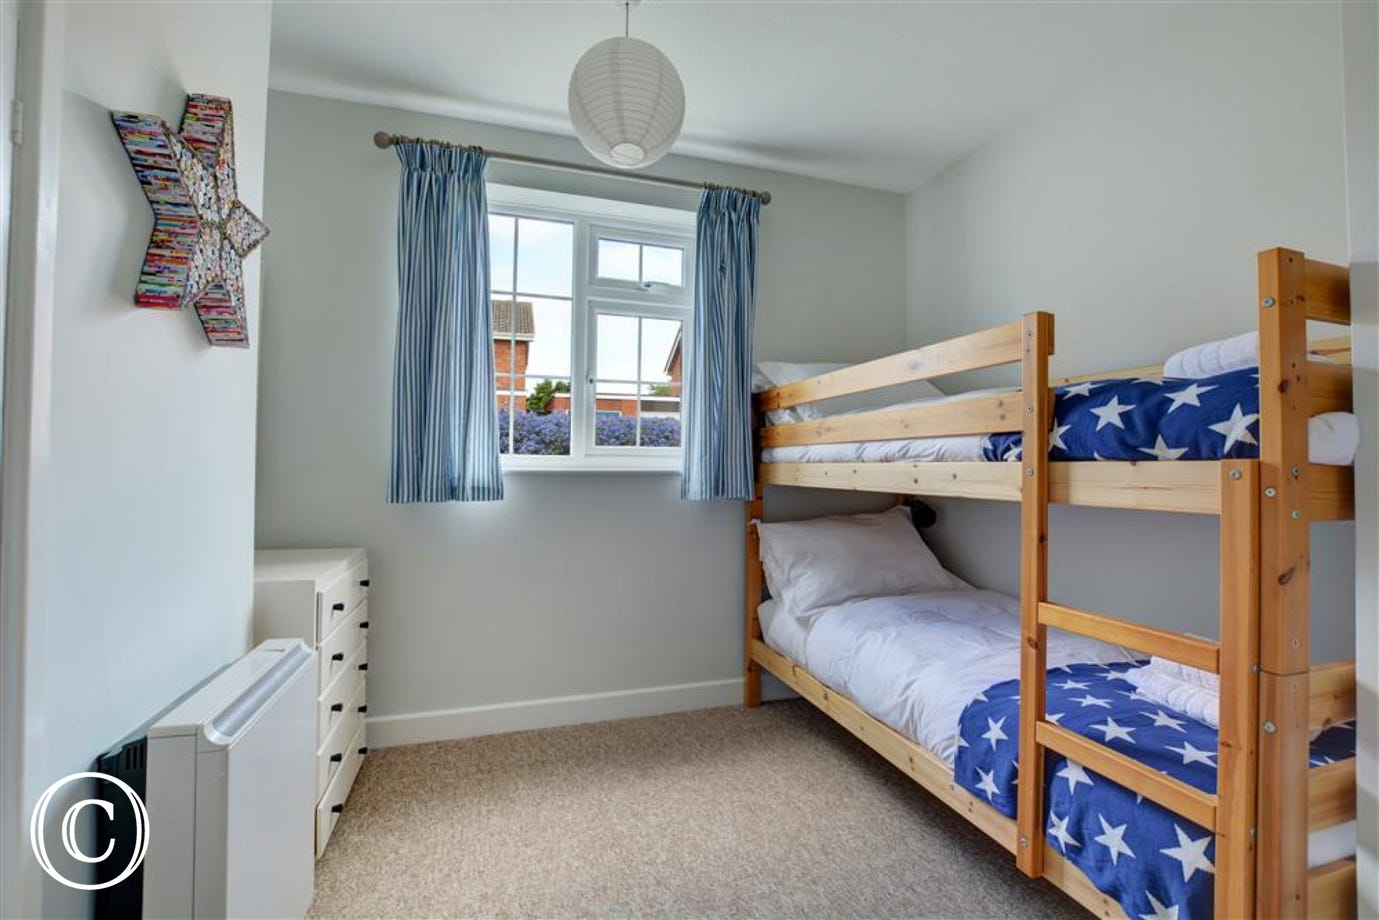 Bedroom three is a bunk bed room perfect for children